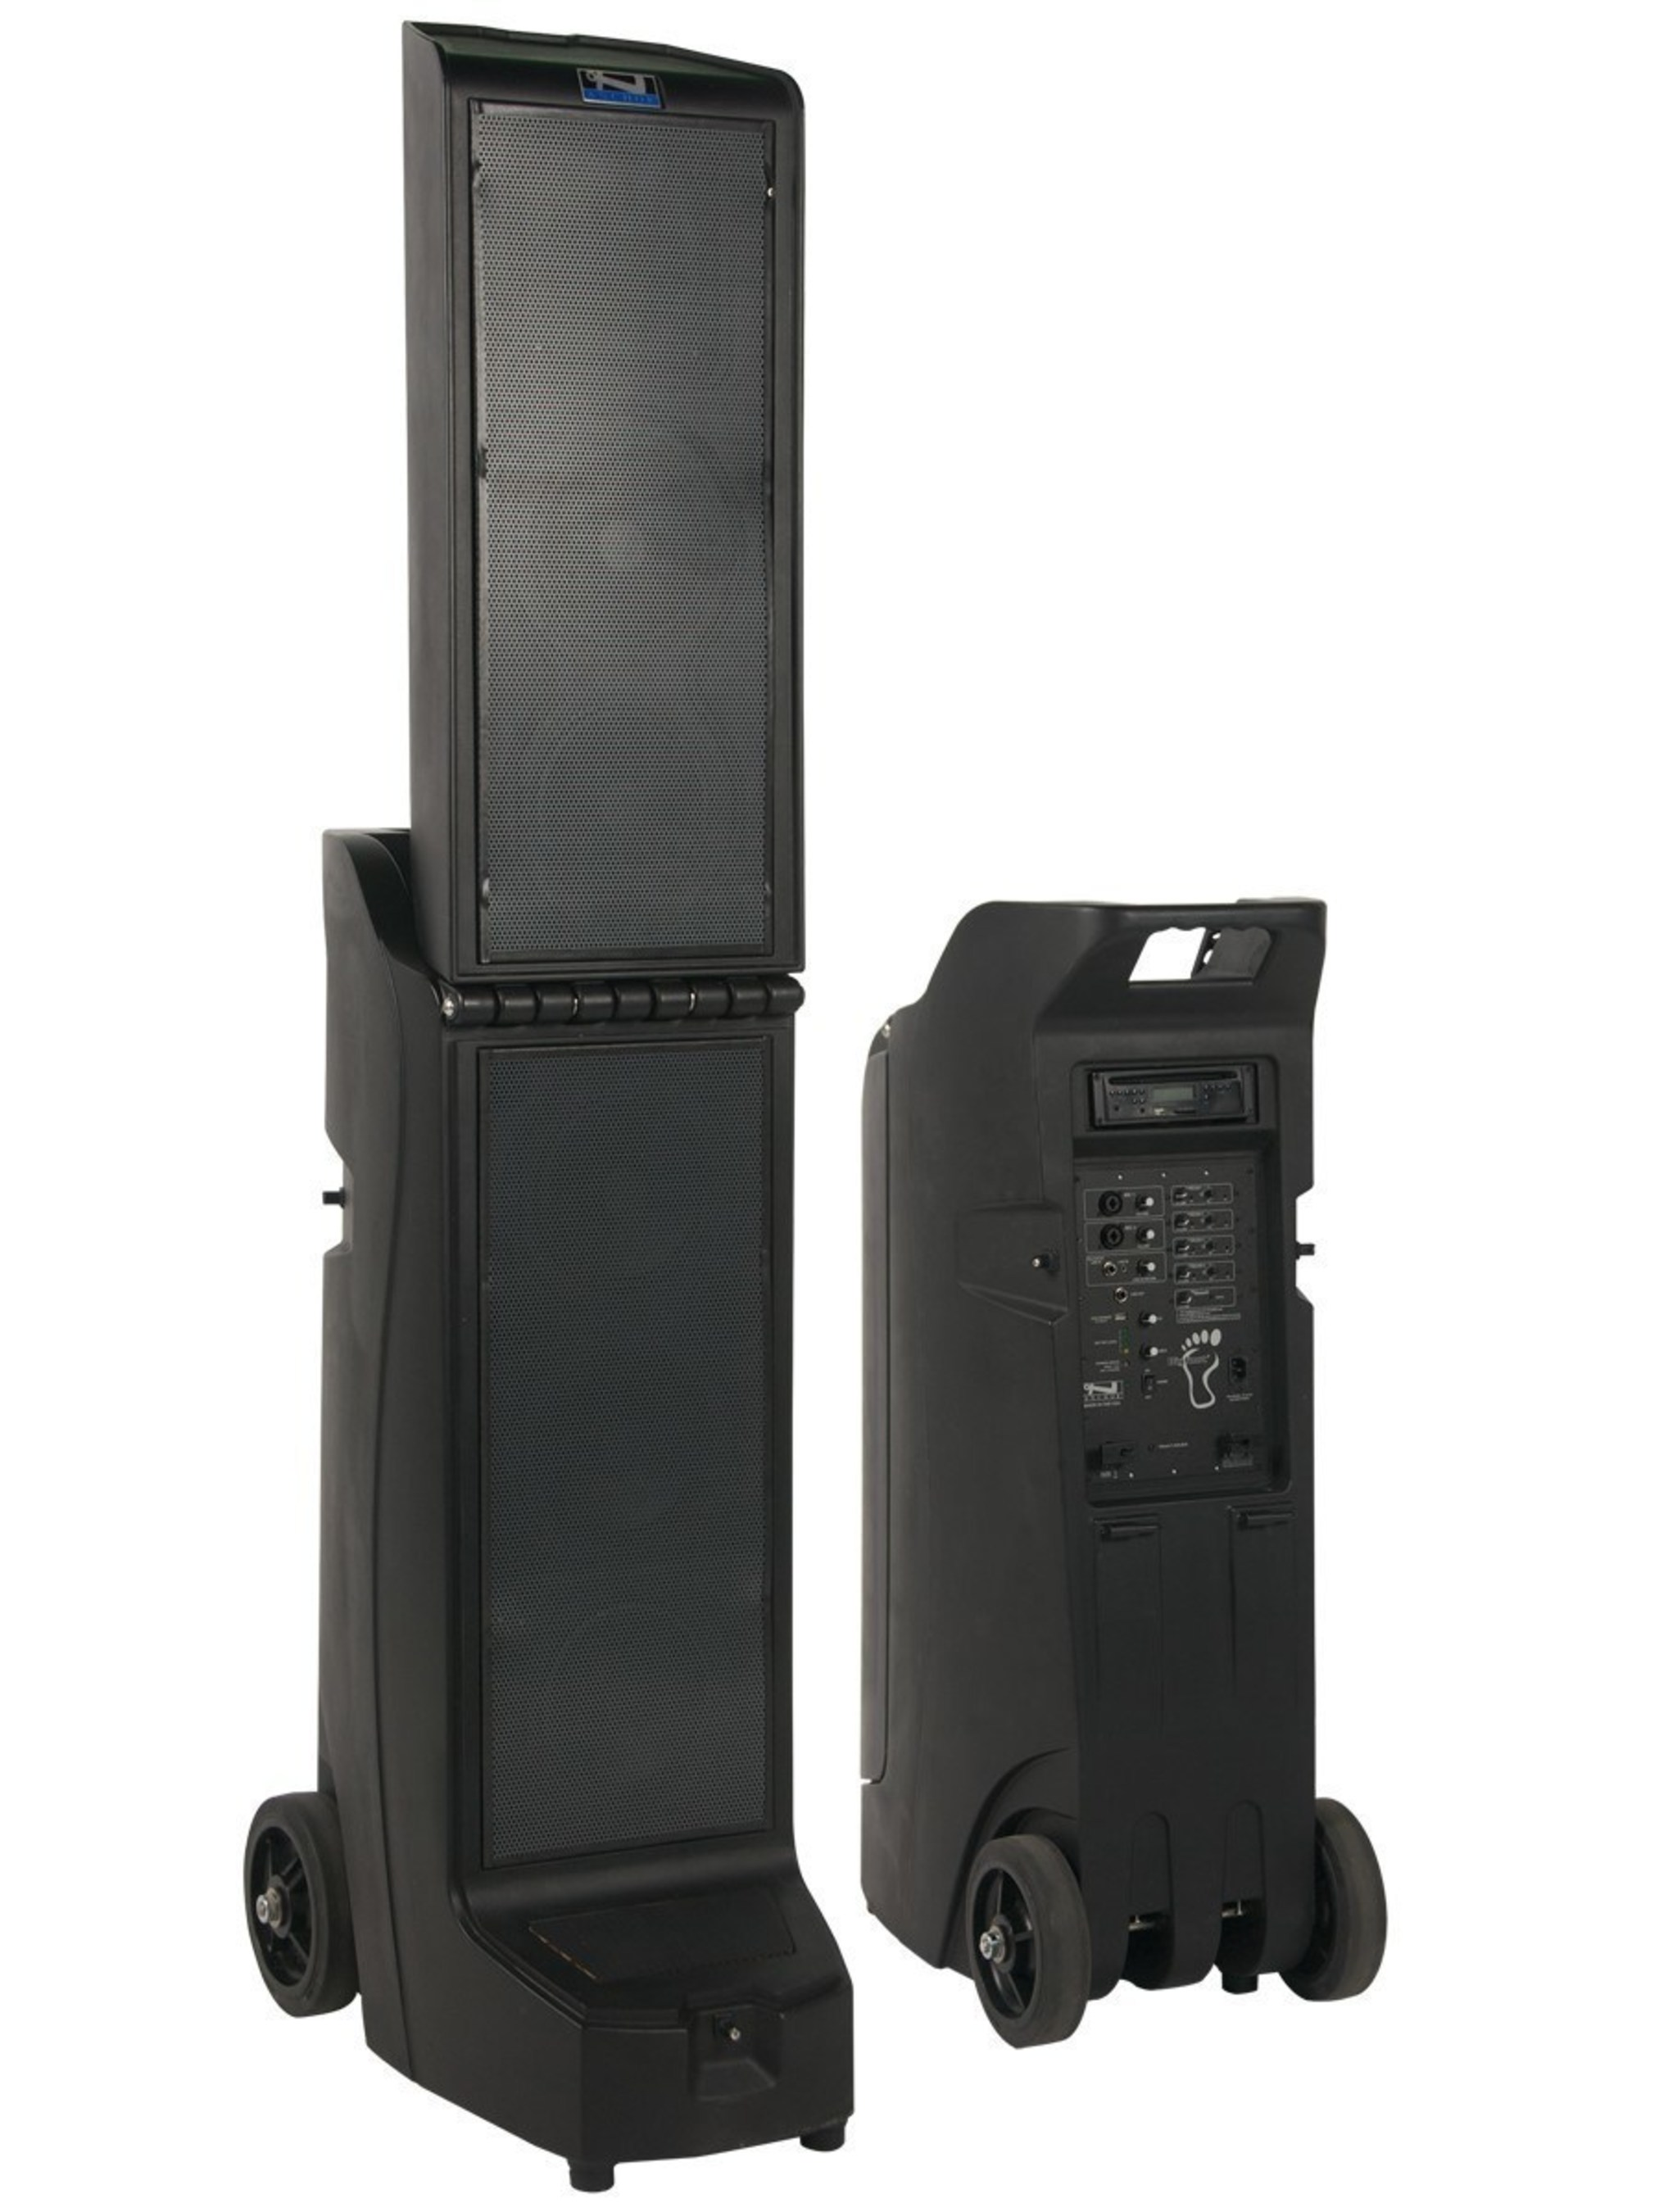 Most Powerful Portable PA System to Launch at InfoComm 2015 in Orlando, FL - Designed by Anchor Audio, Inc.